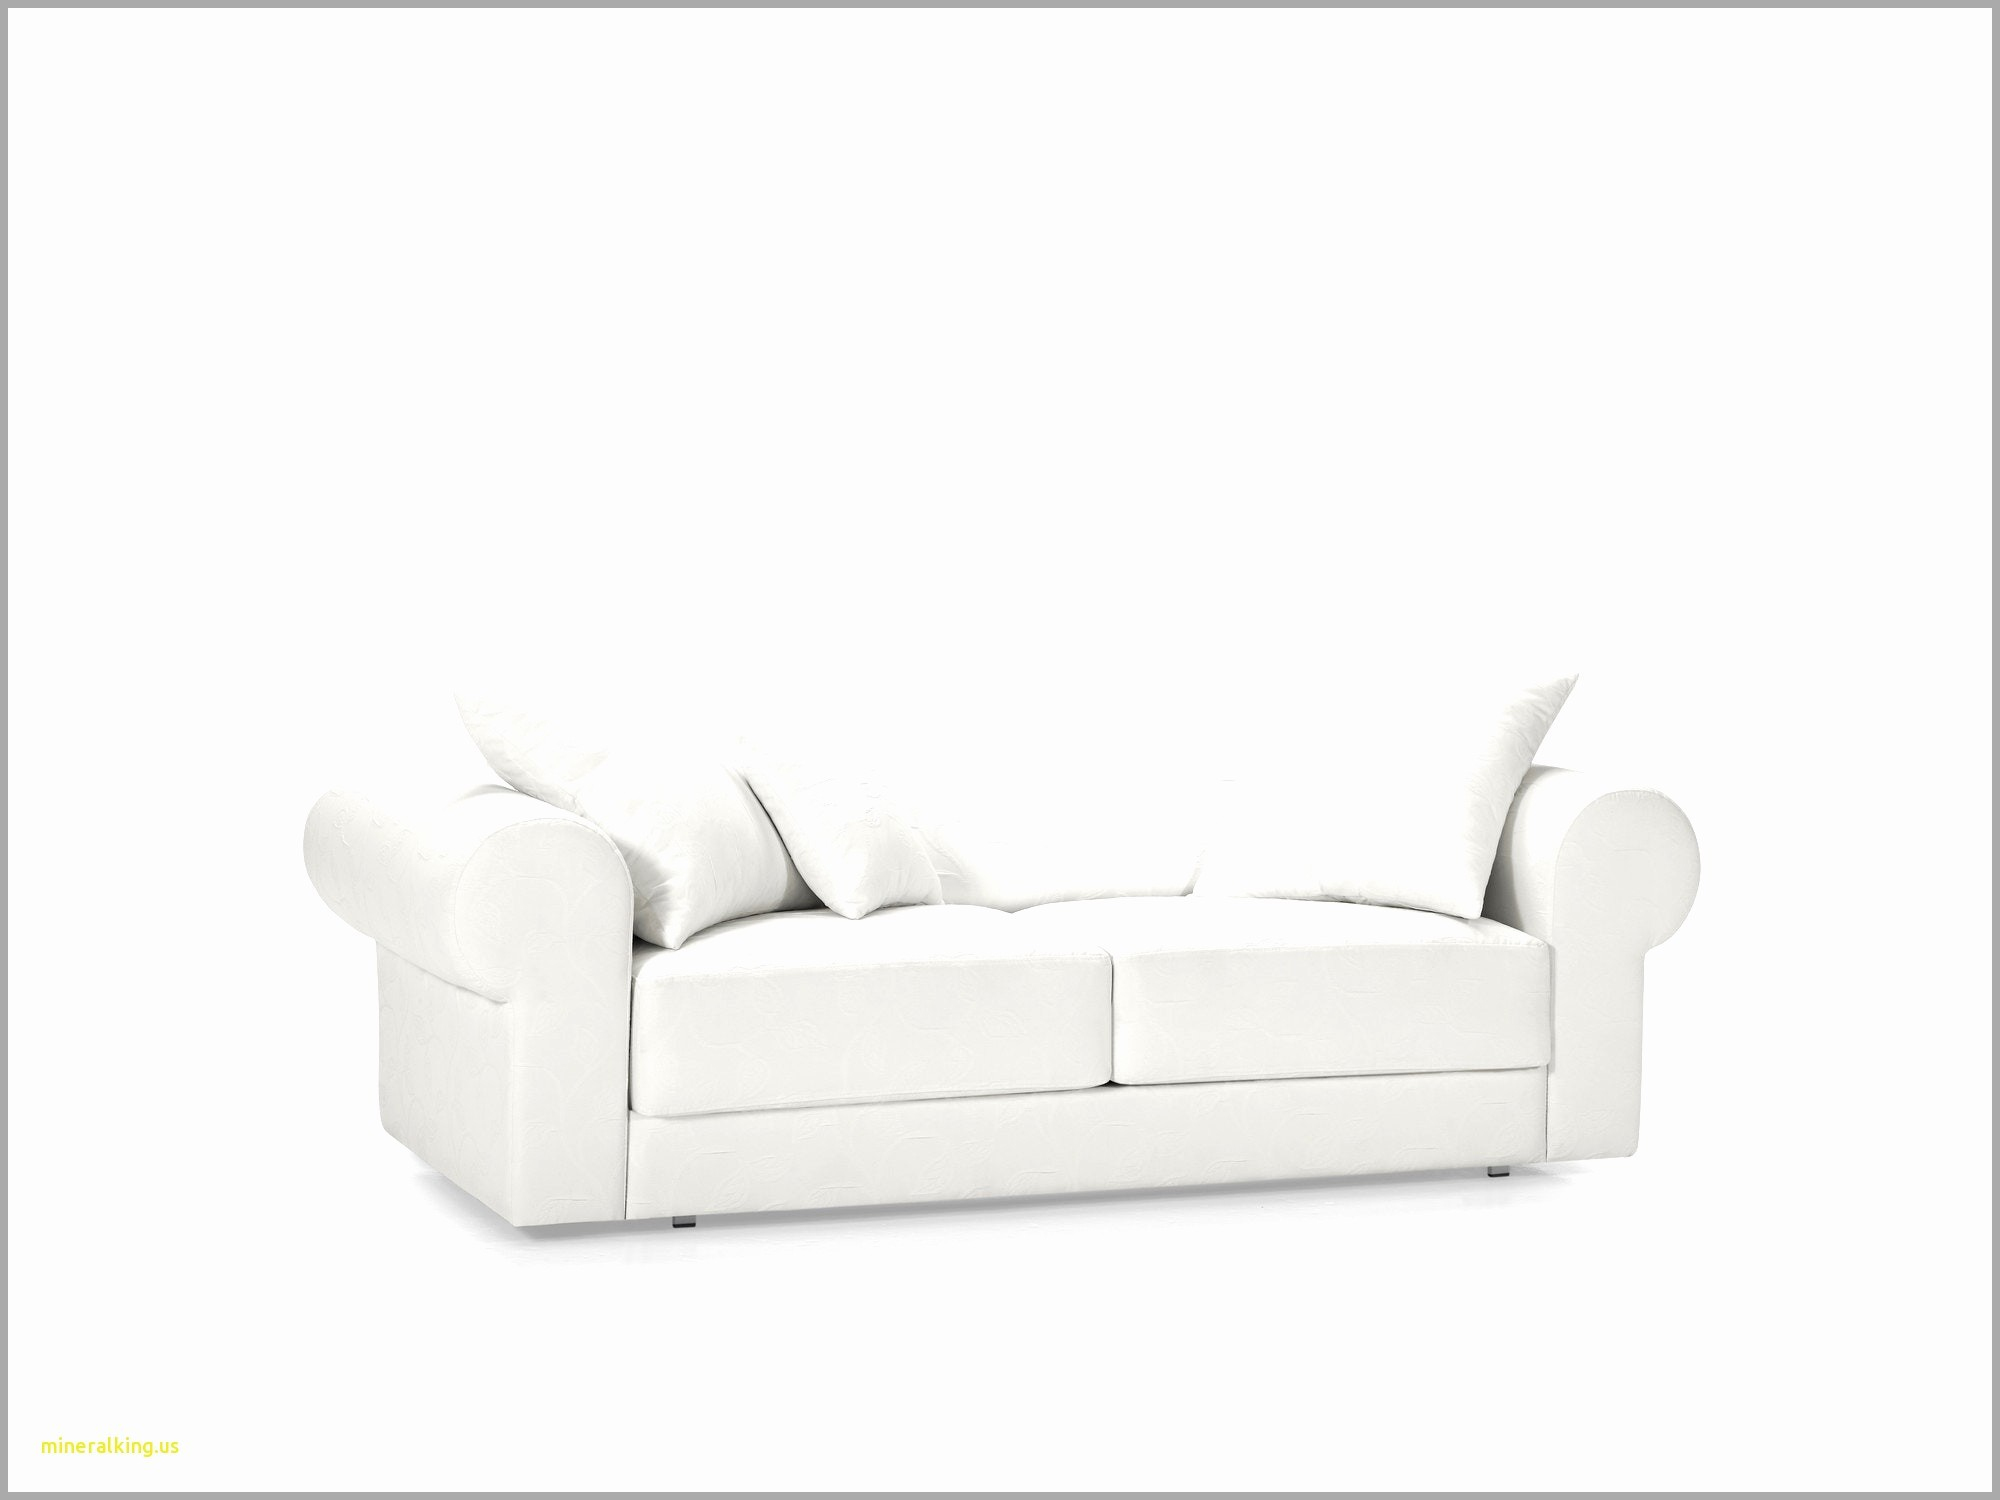 Housse Canapé Angle Ikea Inspirant Photographie Canap Blanc Good Canape D Angle Places Avec Canap N to Madrid Gris